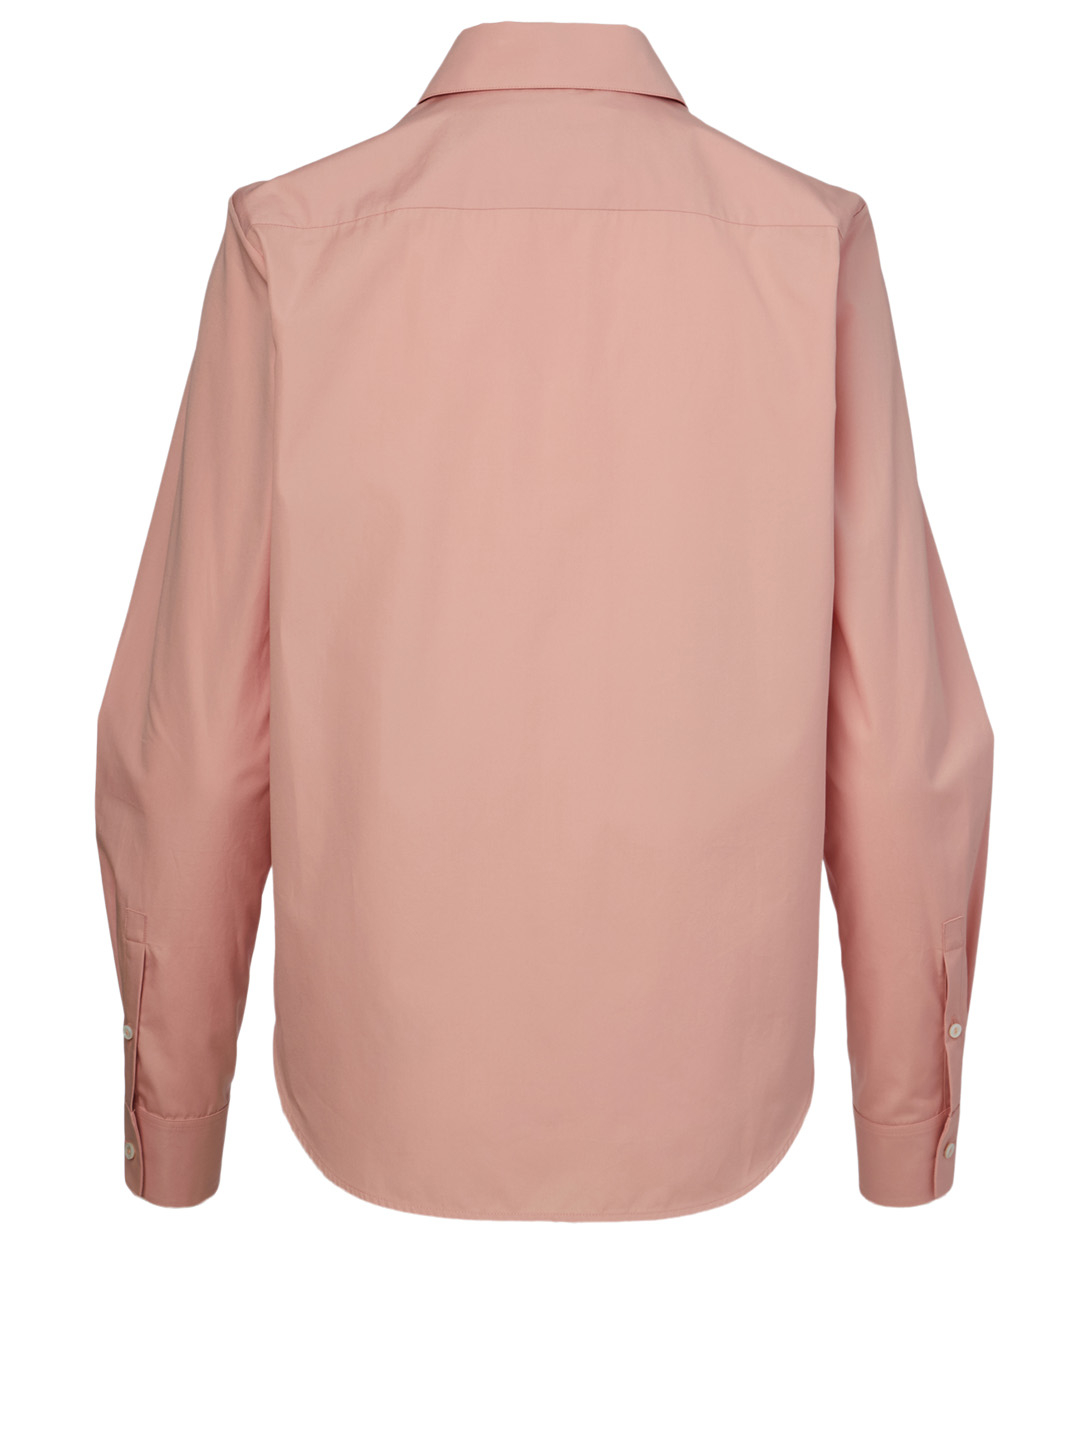 JIL SANDER Giulia Cotton Shirt Women's Pink